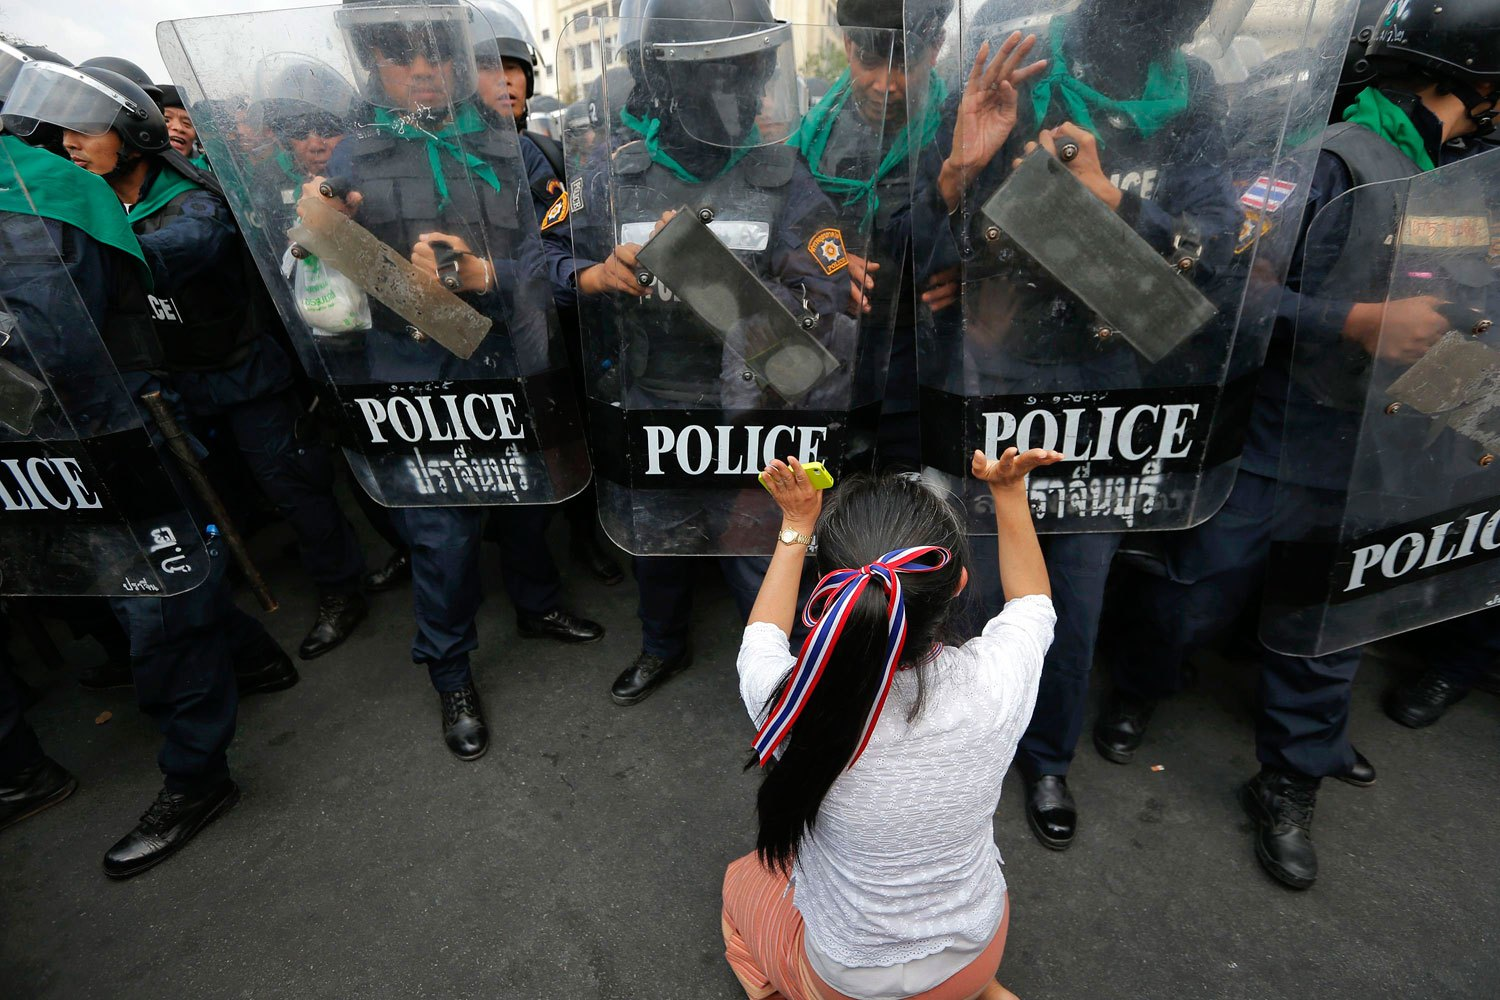 An anti-government protester pushes a line of policemen during clashes near the Government House in Bangkok, on Febr. 18, 2014.